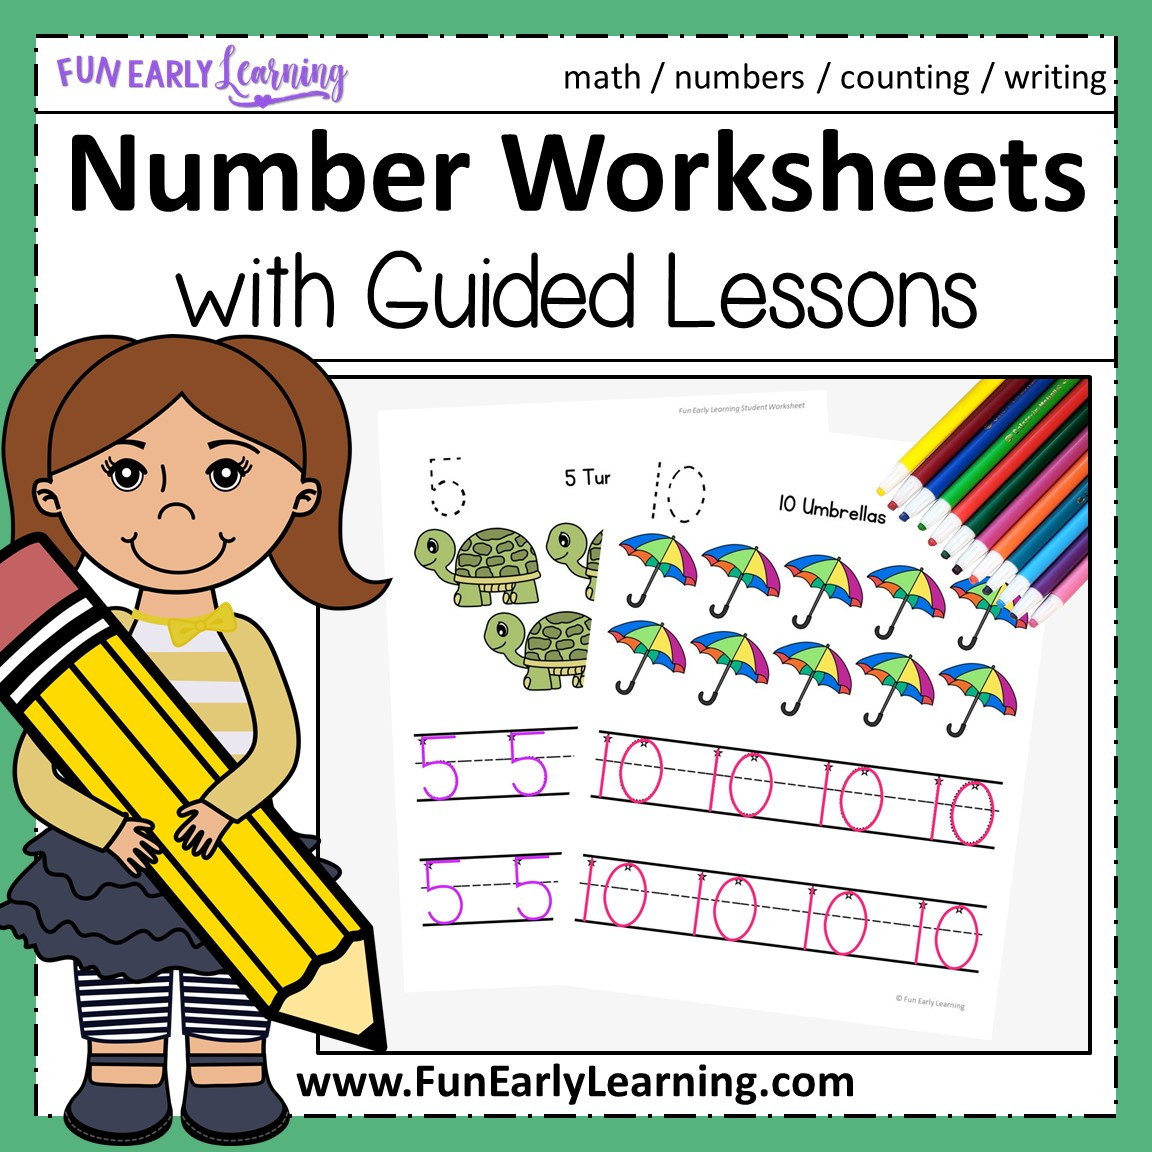 Quantifying Worksheet For Preschoolers